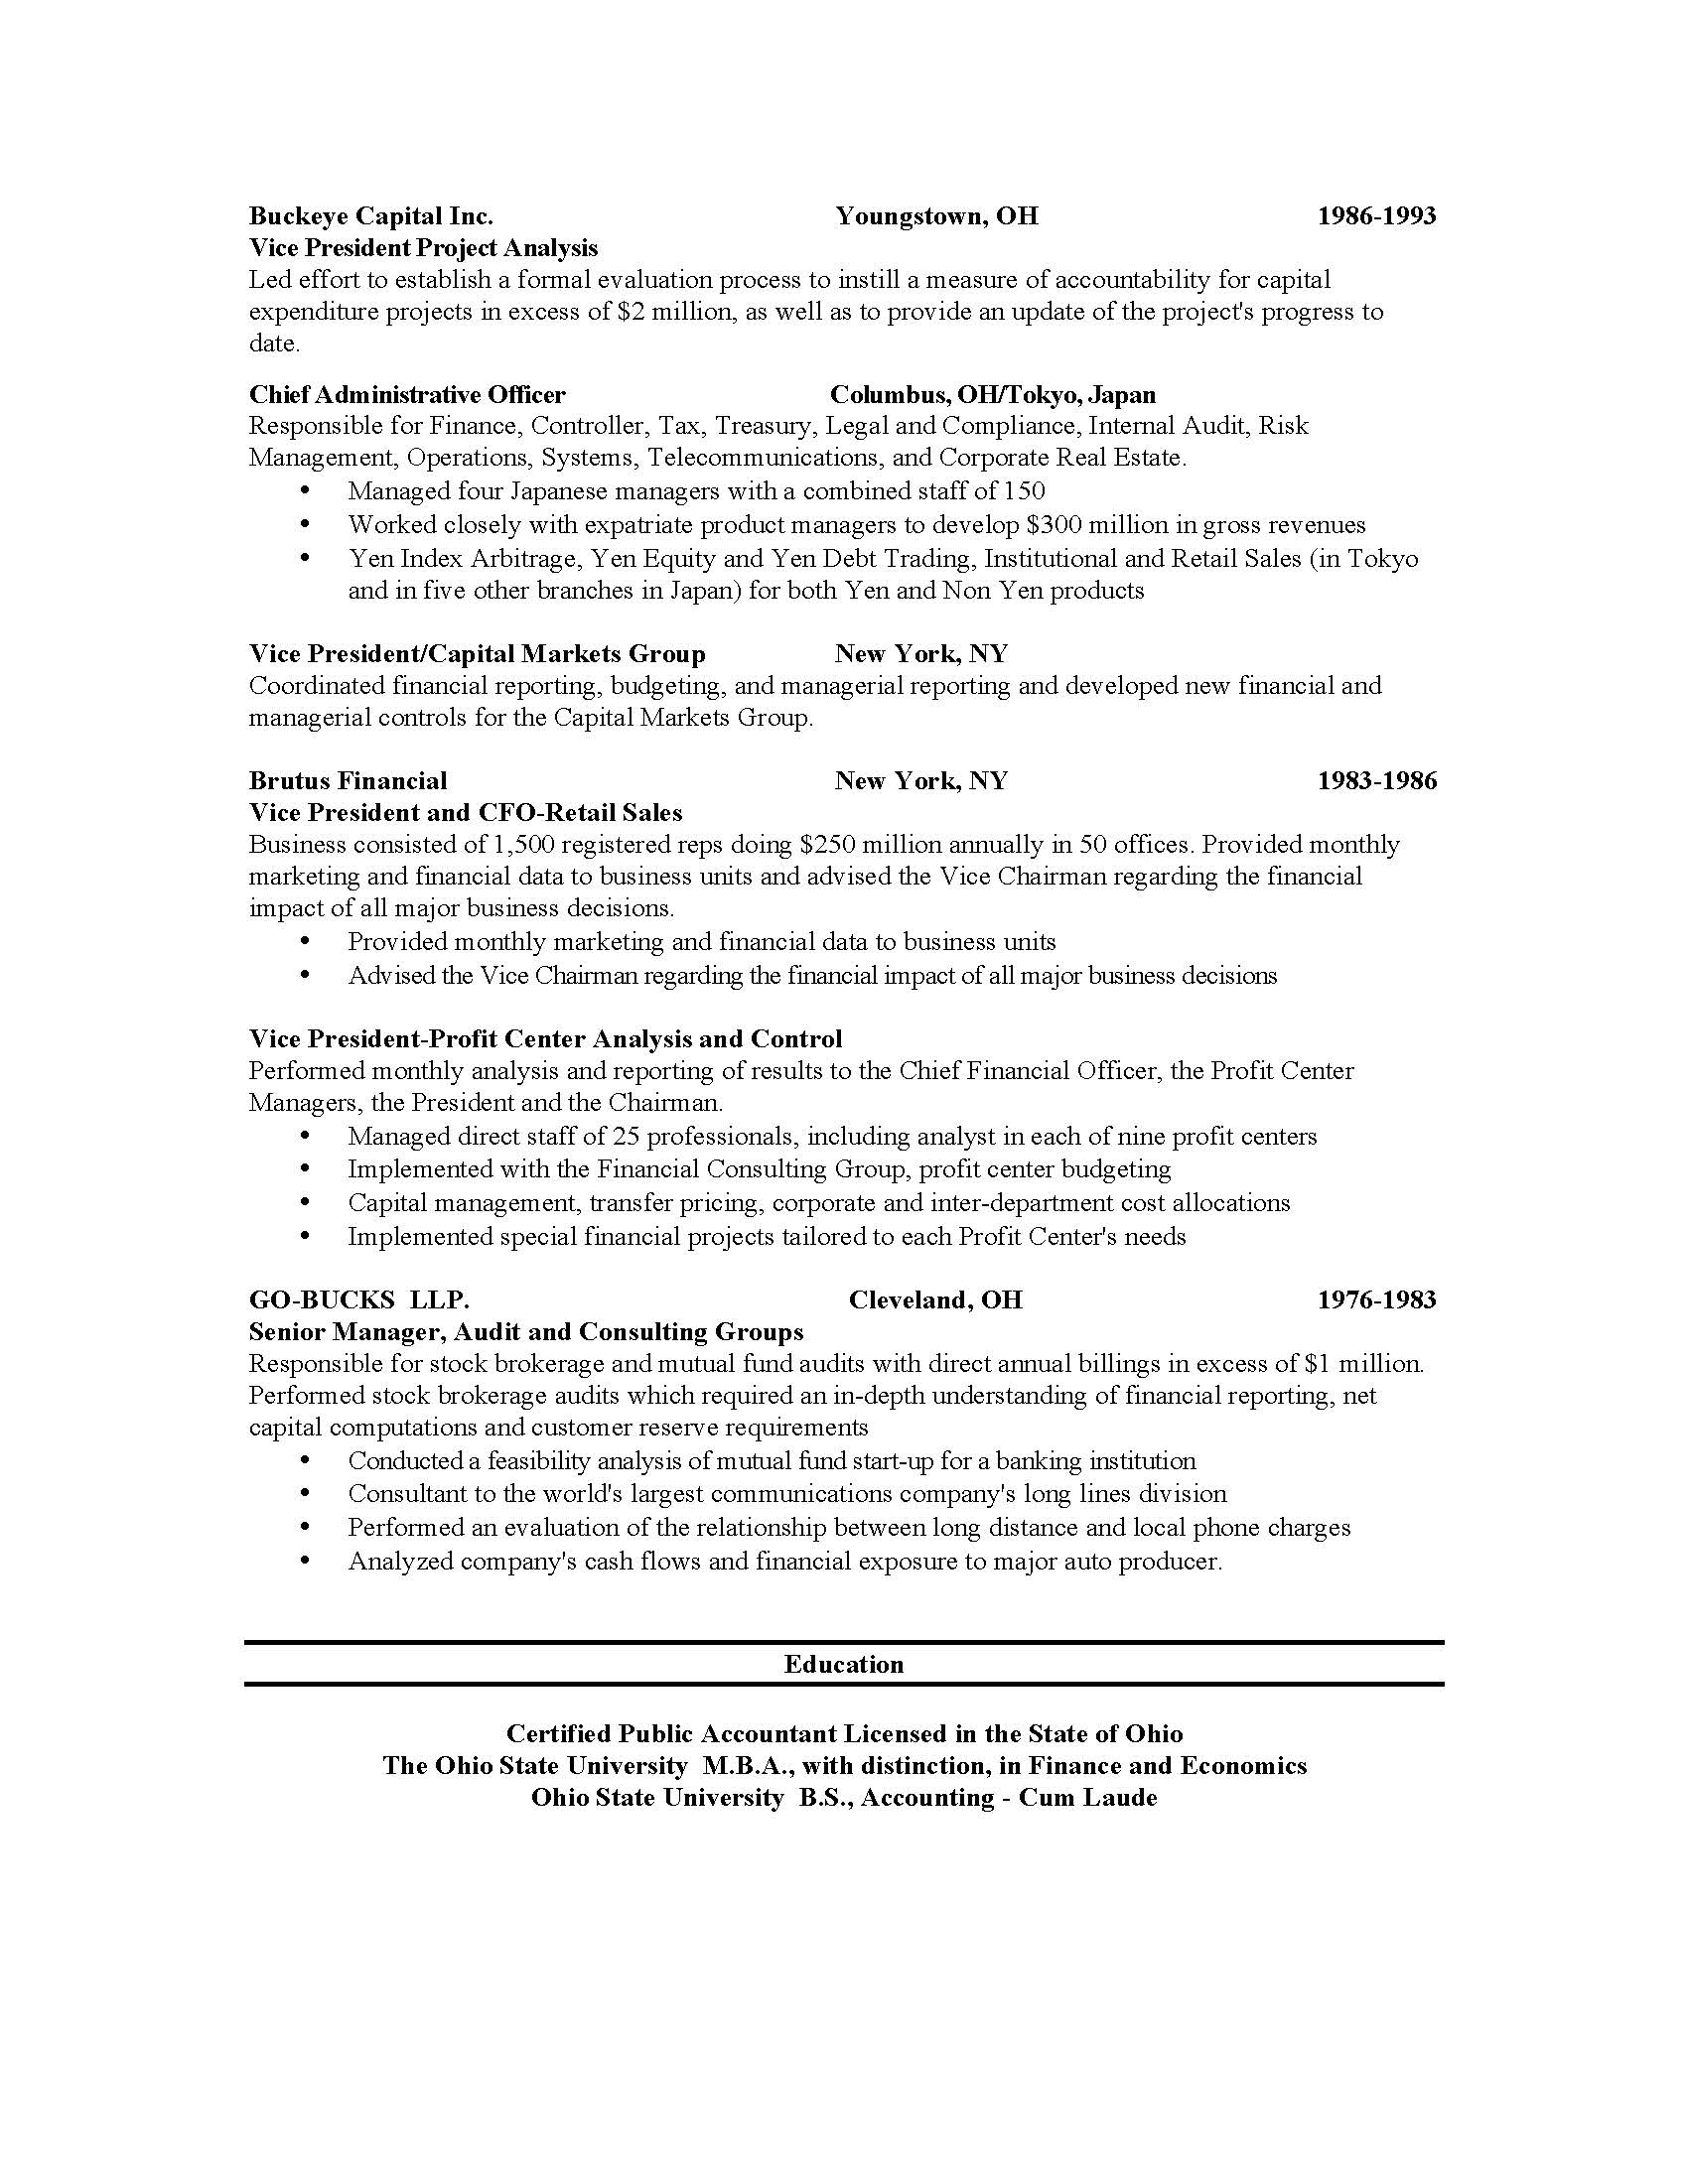 Free Template Cover Letter for Job Application - Writing A Cover Letter for Government Job Nardellidesign 5 Best